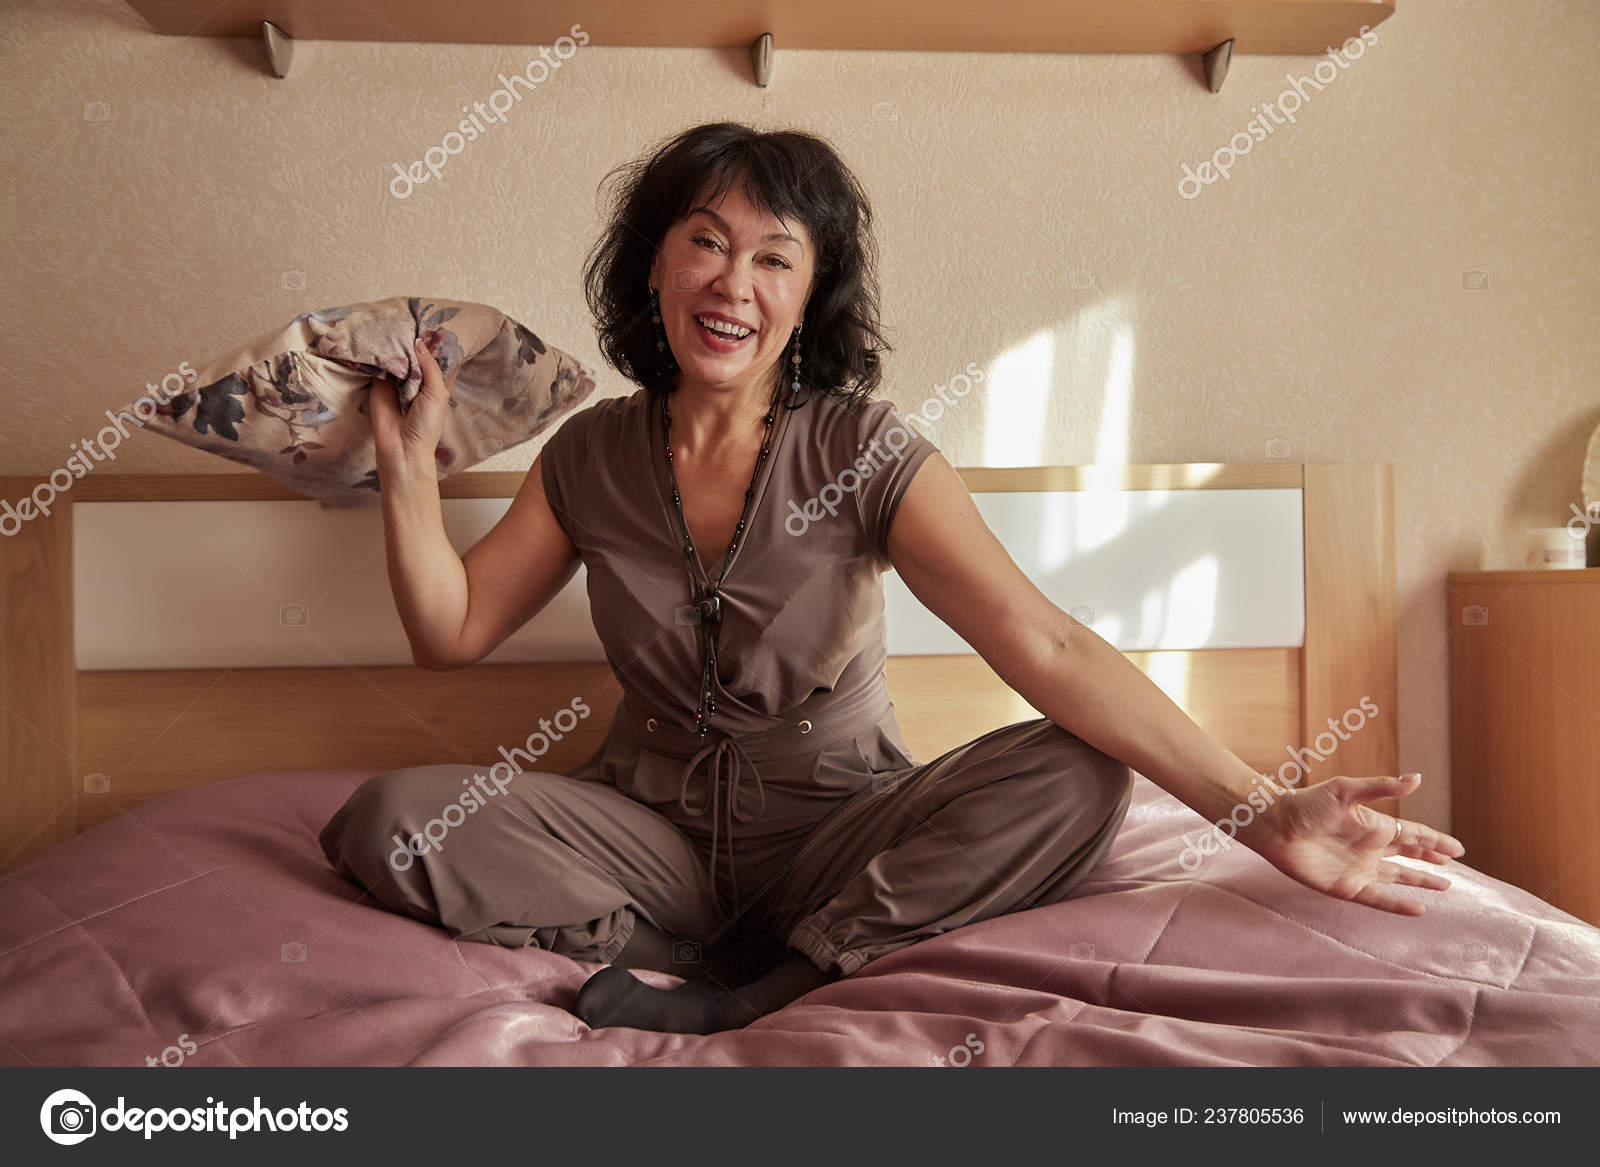 Nice Middle Aged Woman Bed Room Lady Home Have Rest Stock Photo C Keleny 237805536